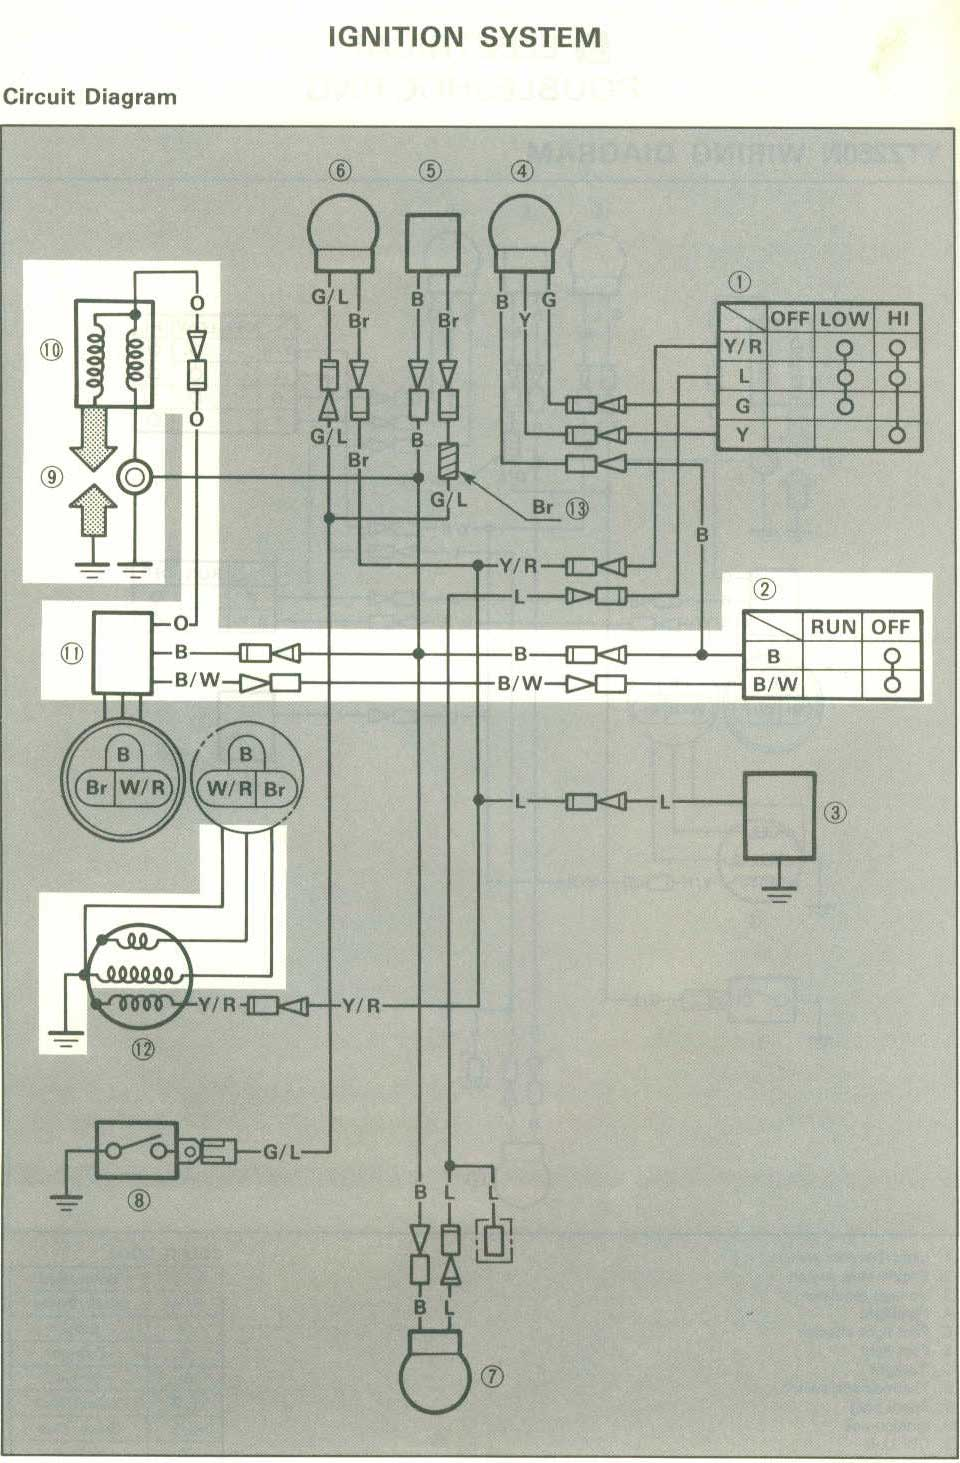 hight resolution of yamaha xt200 wiring diagram wiring diagram details yamaha xt200 wiring diagram